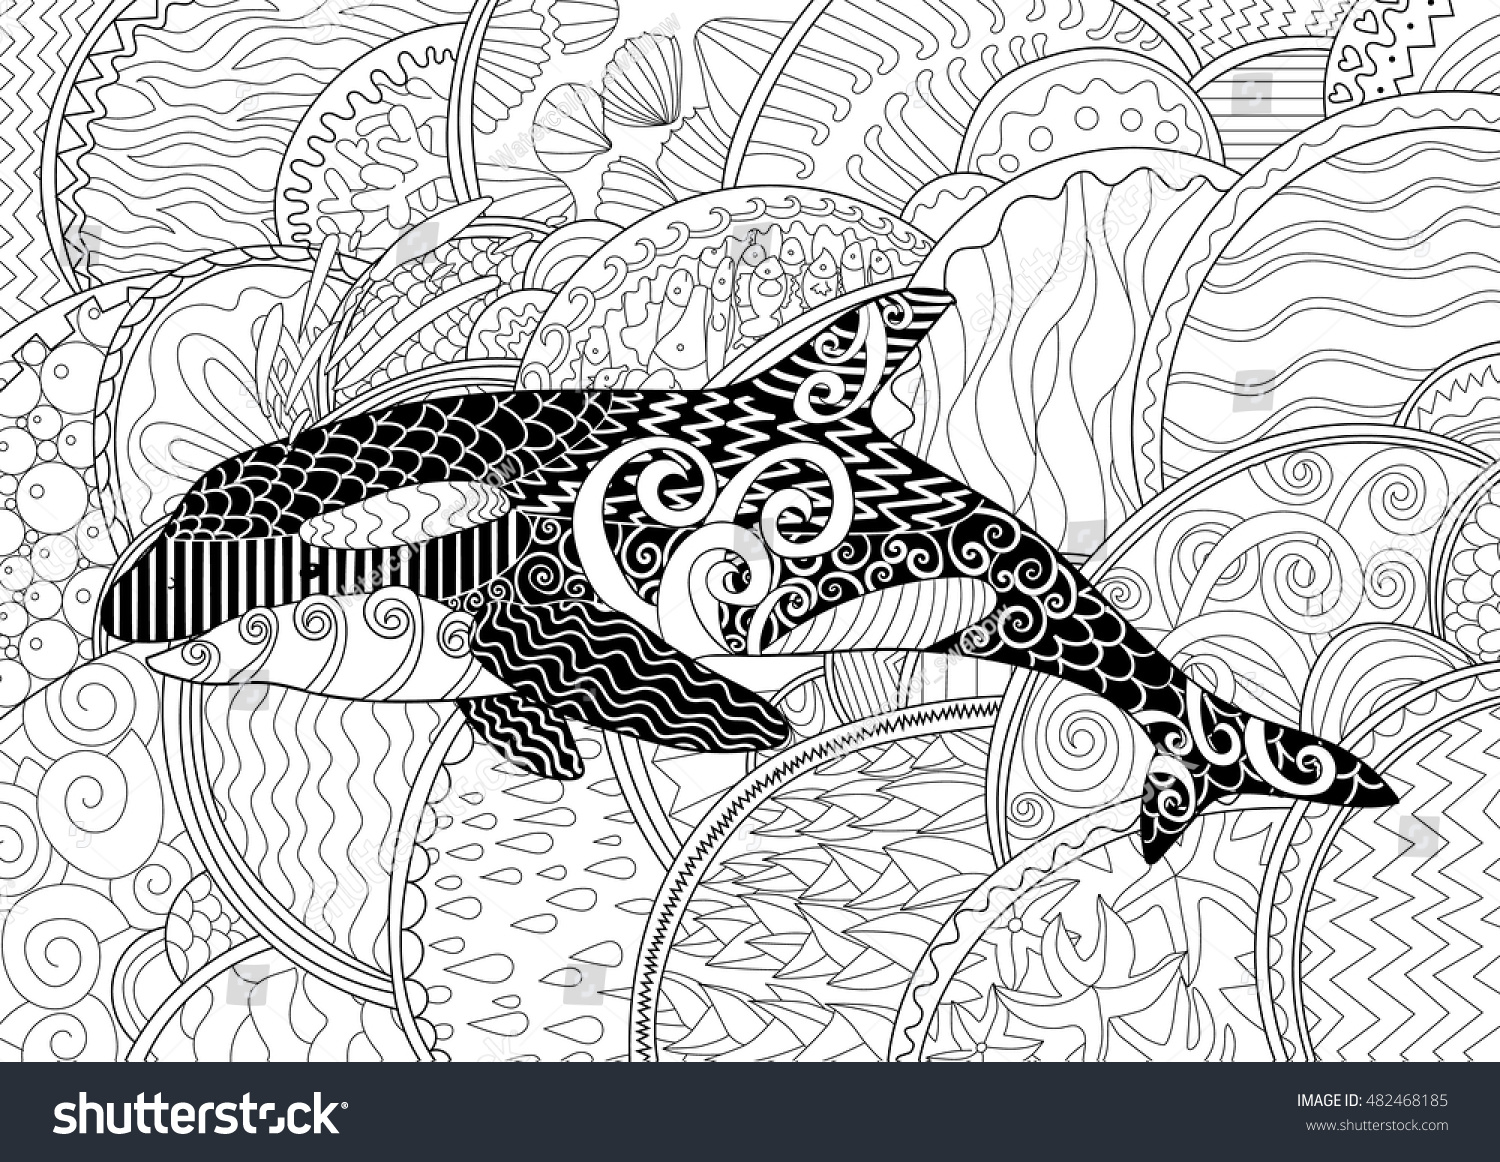 Whale | Free Printable Templates & Coloring Pages | FirstPalette.com | 1162x1500